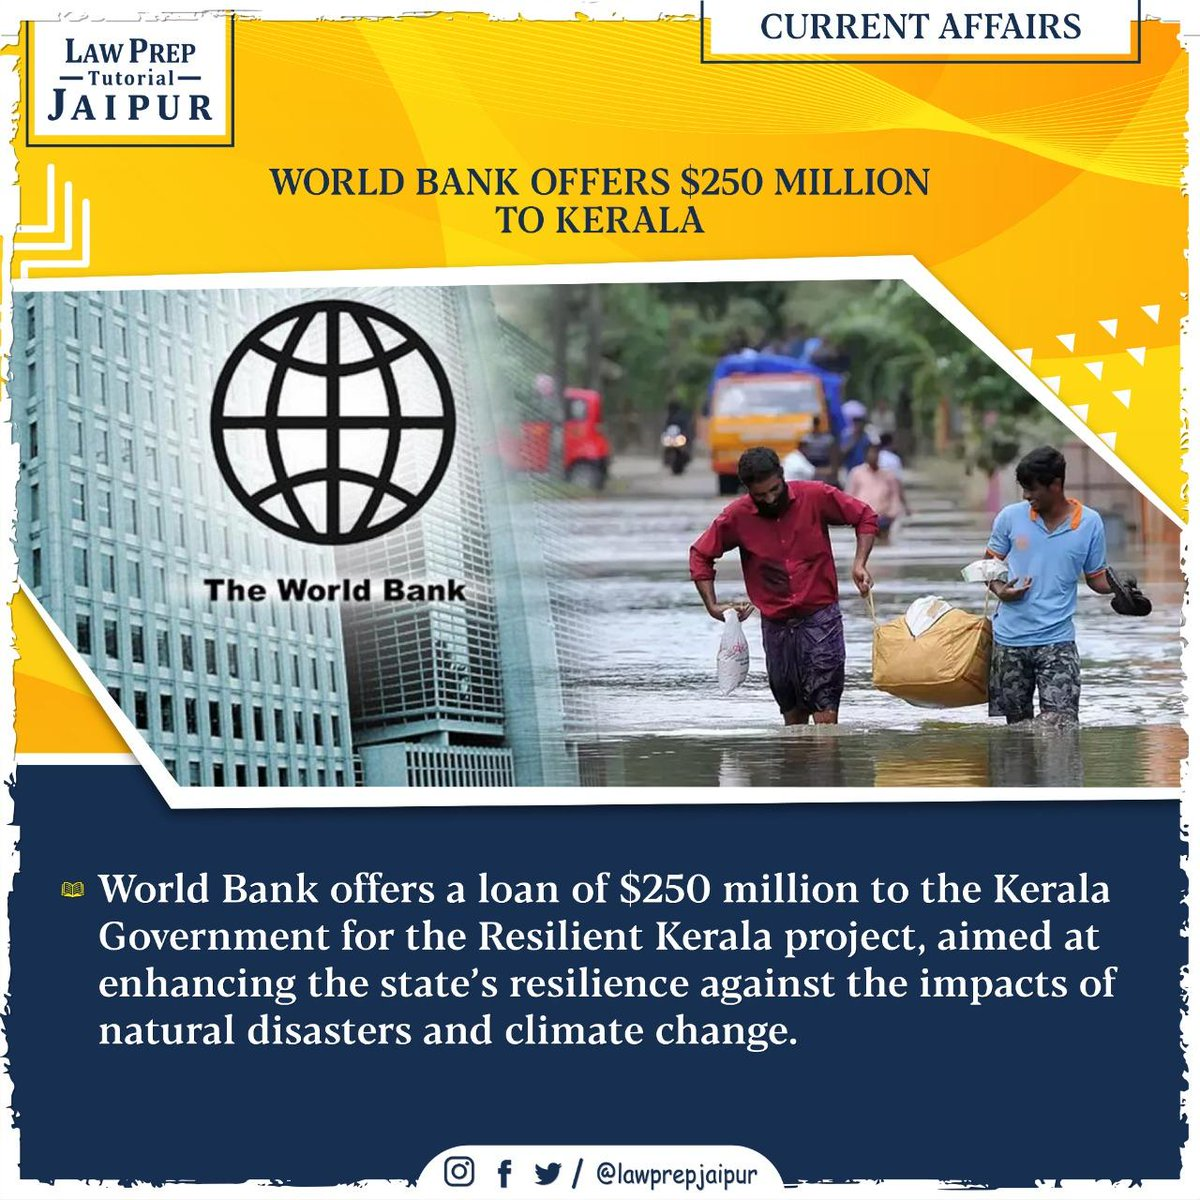 Stay connected for more such Current Affairs.  #Gk #CLATGK #CLAT2020 #CLATQuestions #currentaffairs #LegalGk #WorldBankOffers #KeralaProject